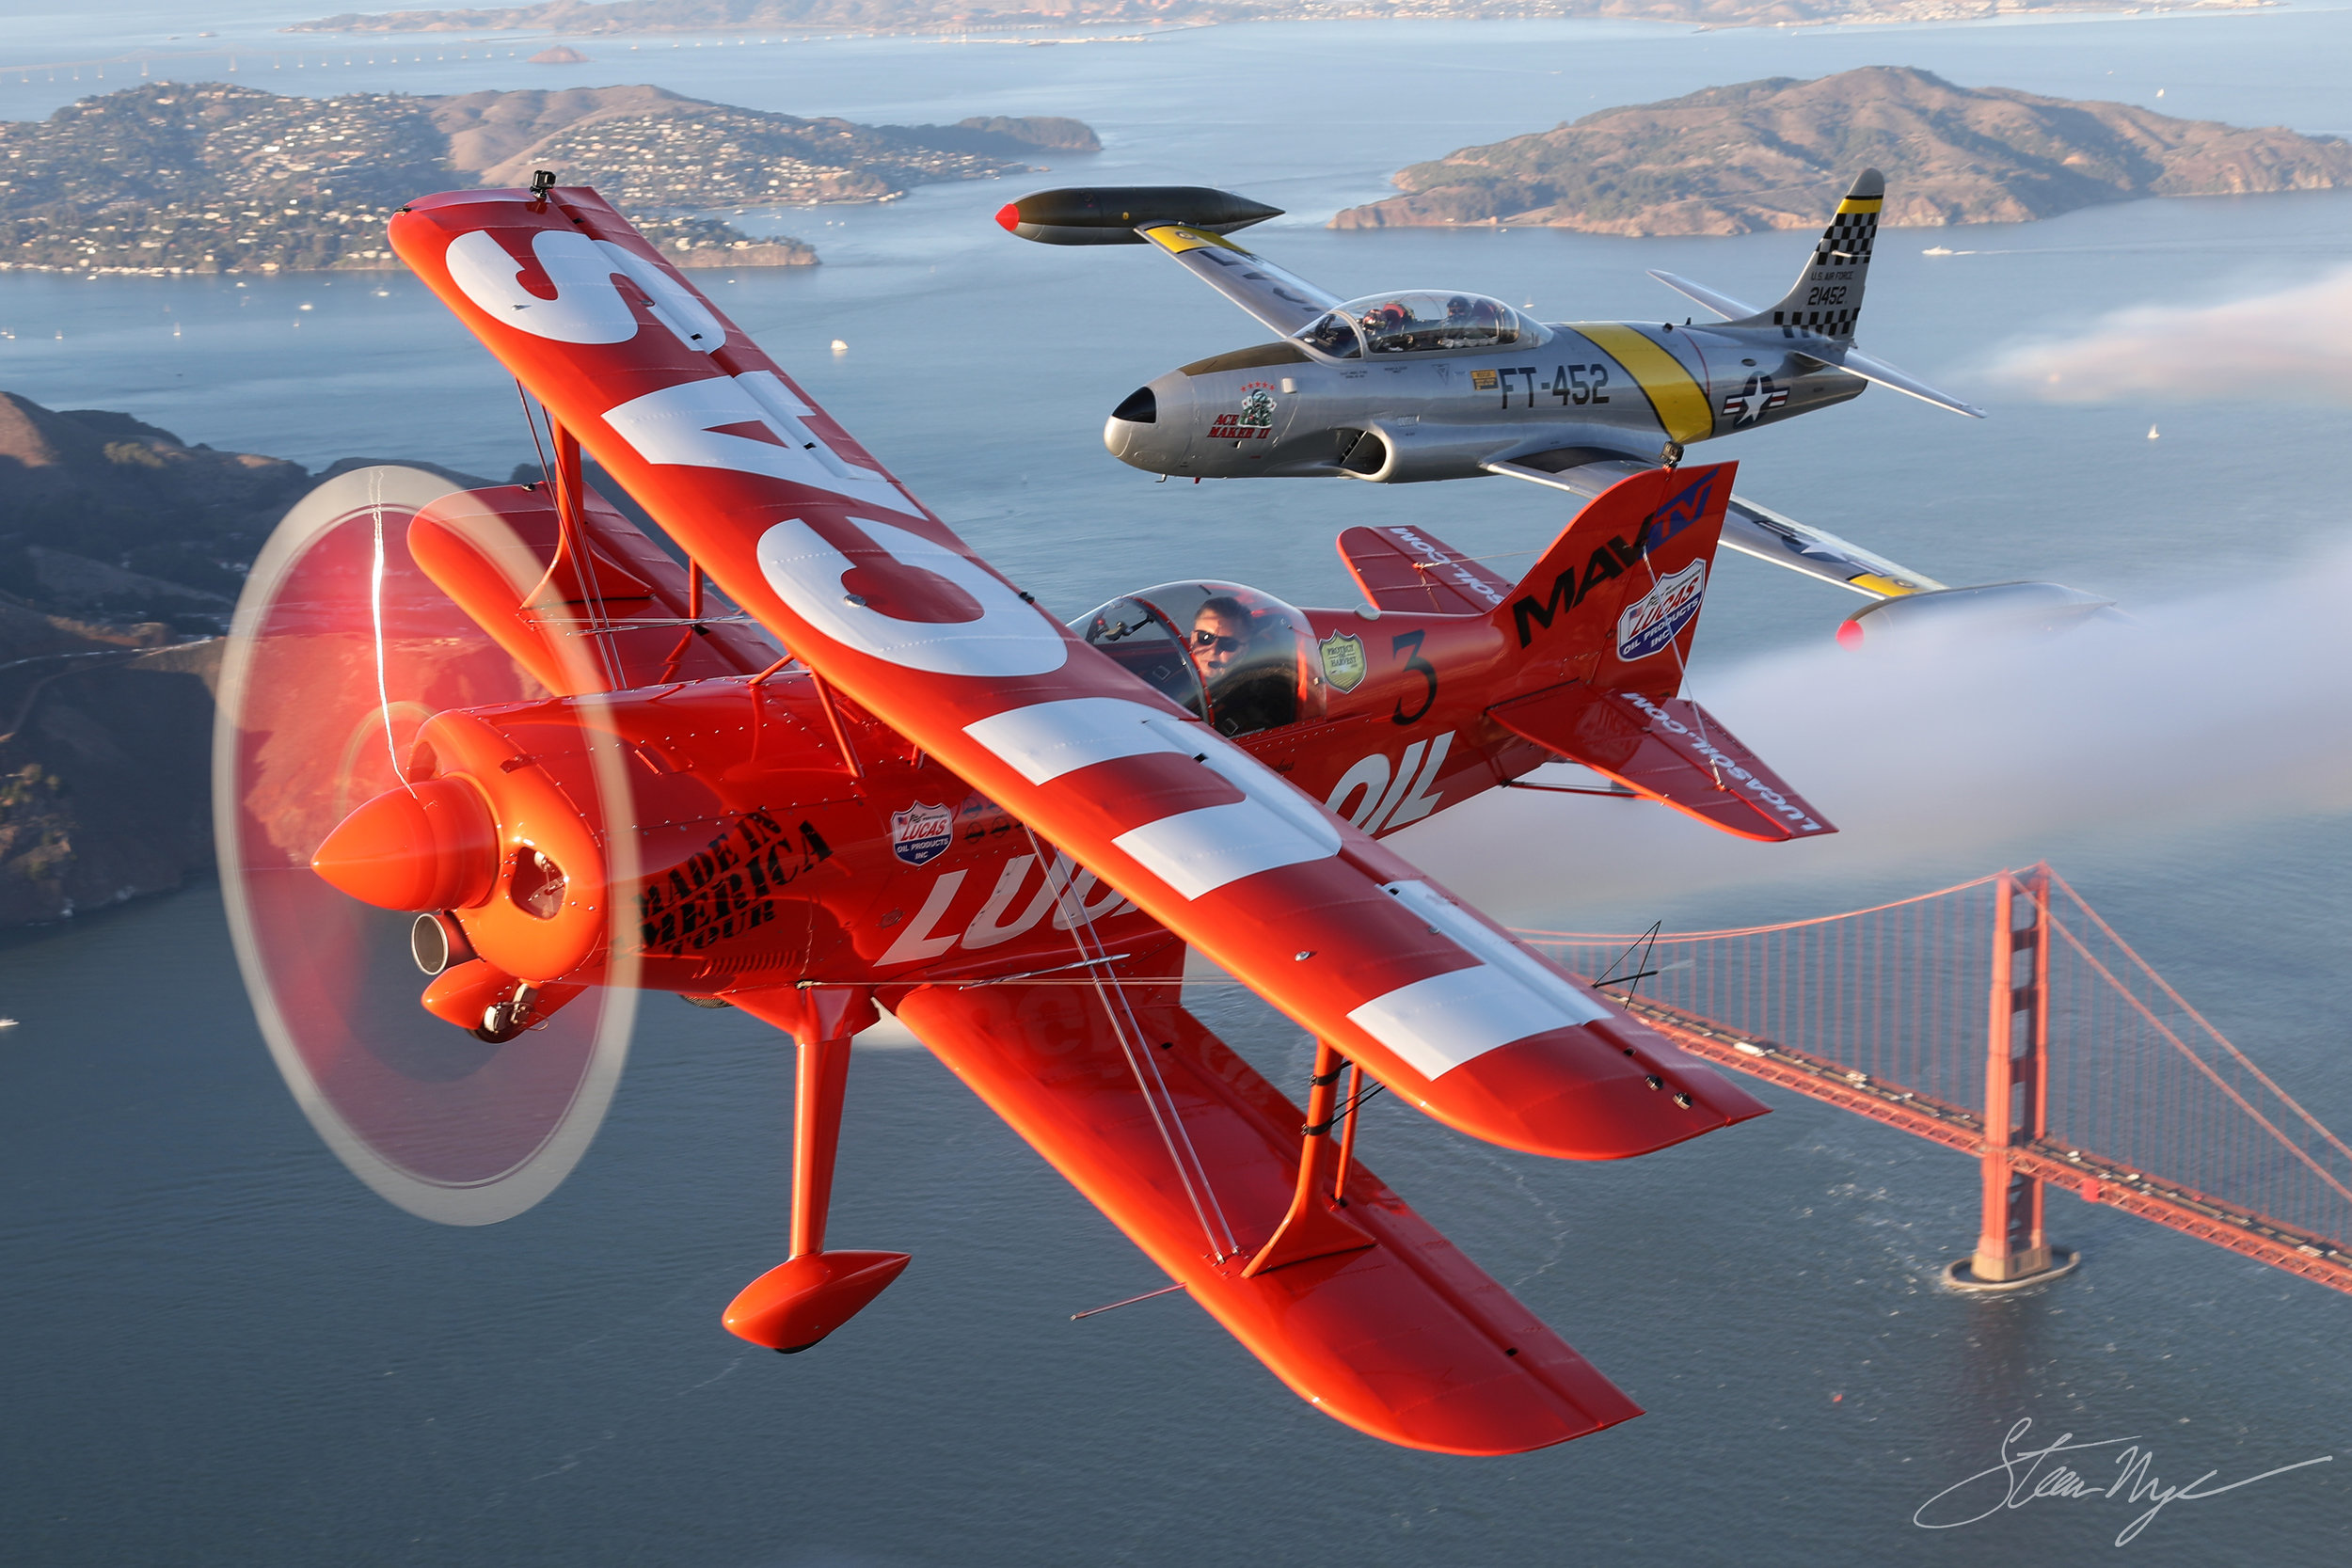 Stunt pilot Michael Wiskus flying his Pitts Special with Greg Colyer's Ace Maker T-33 over the Golden Gate Bridge in San Francisco, CA.